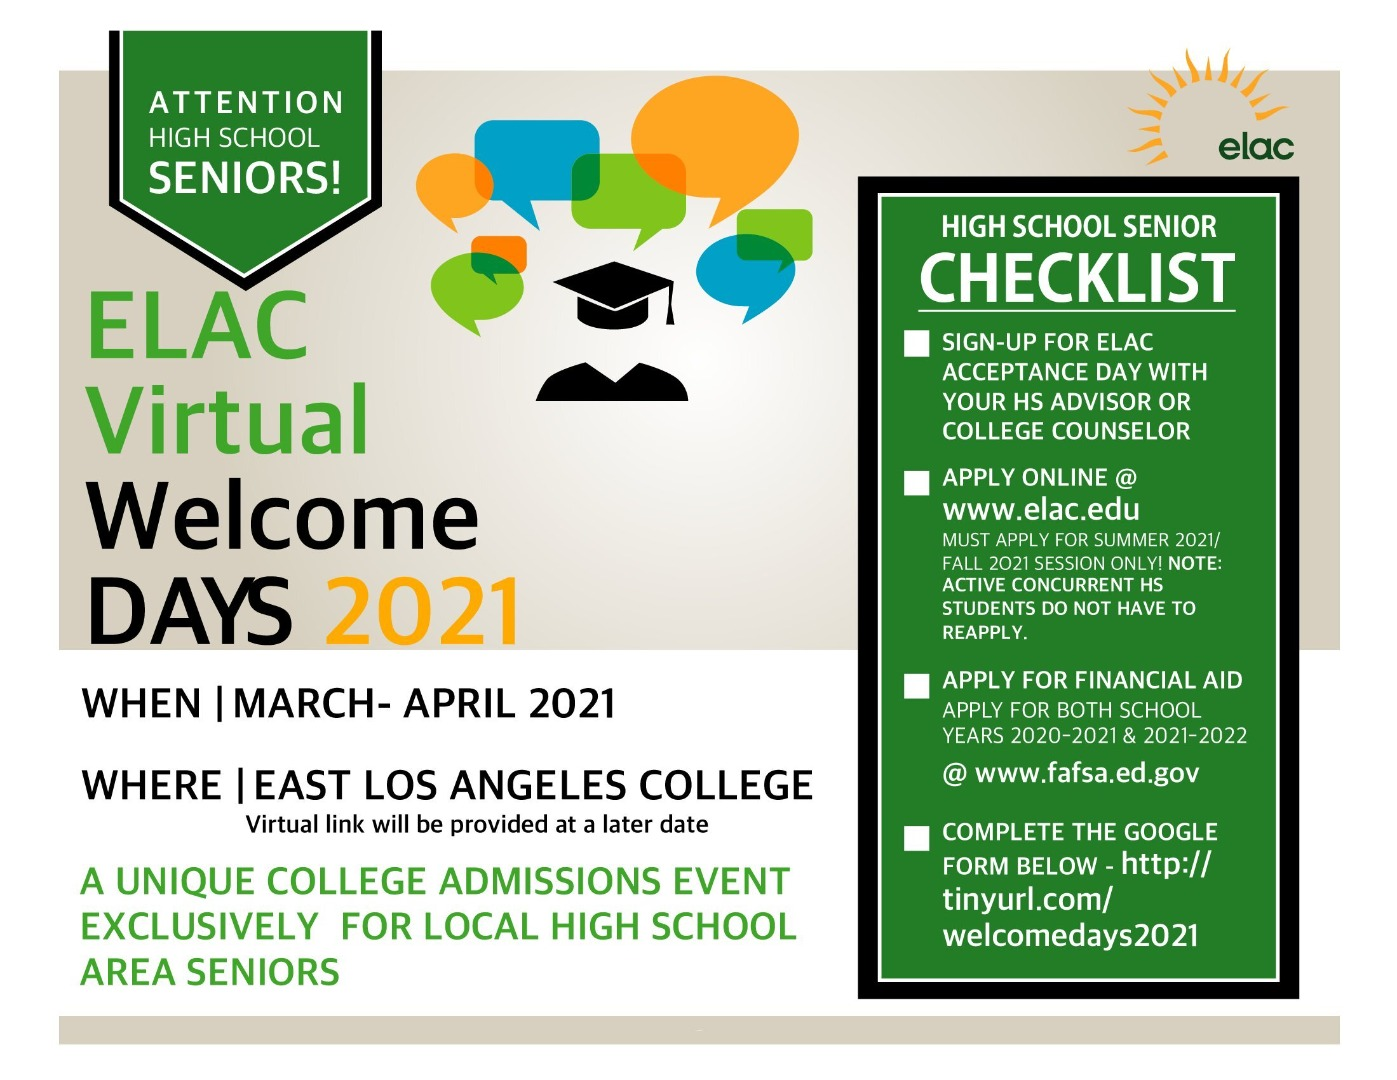 welcome days at elac